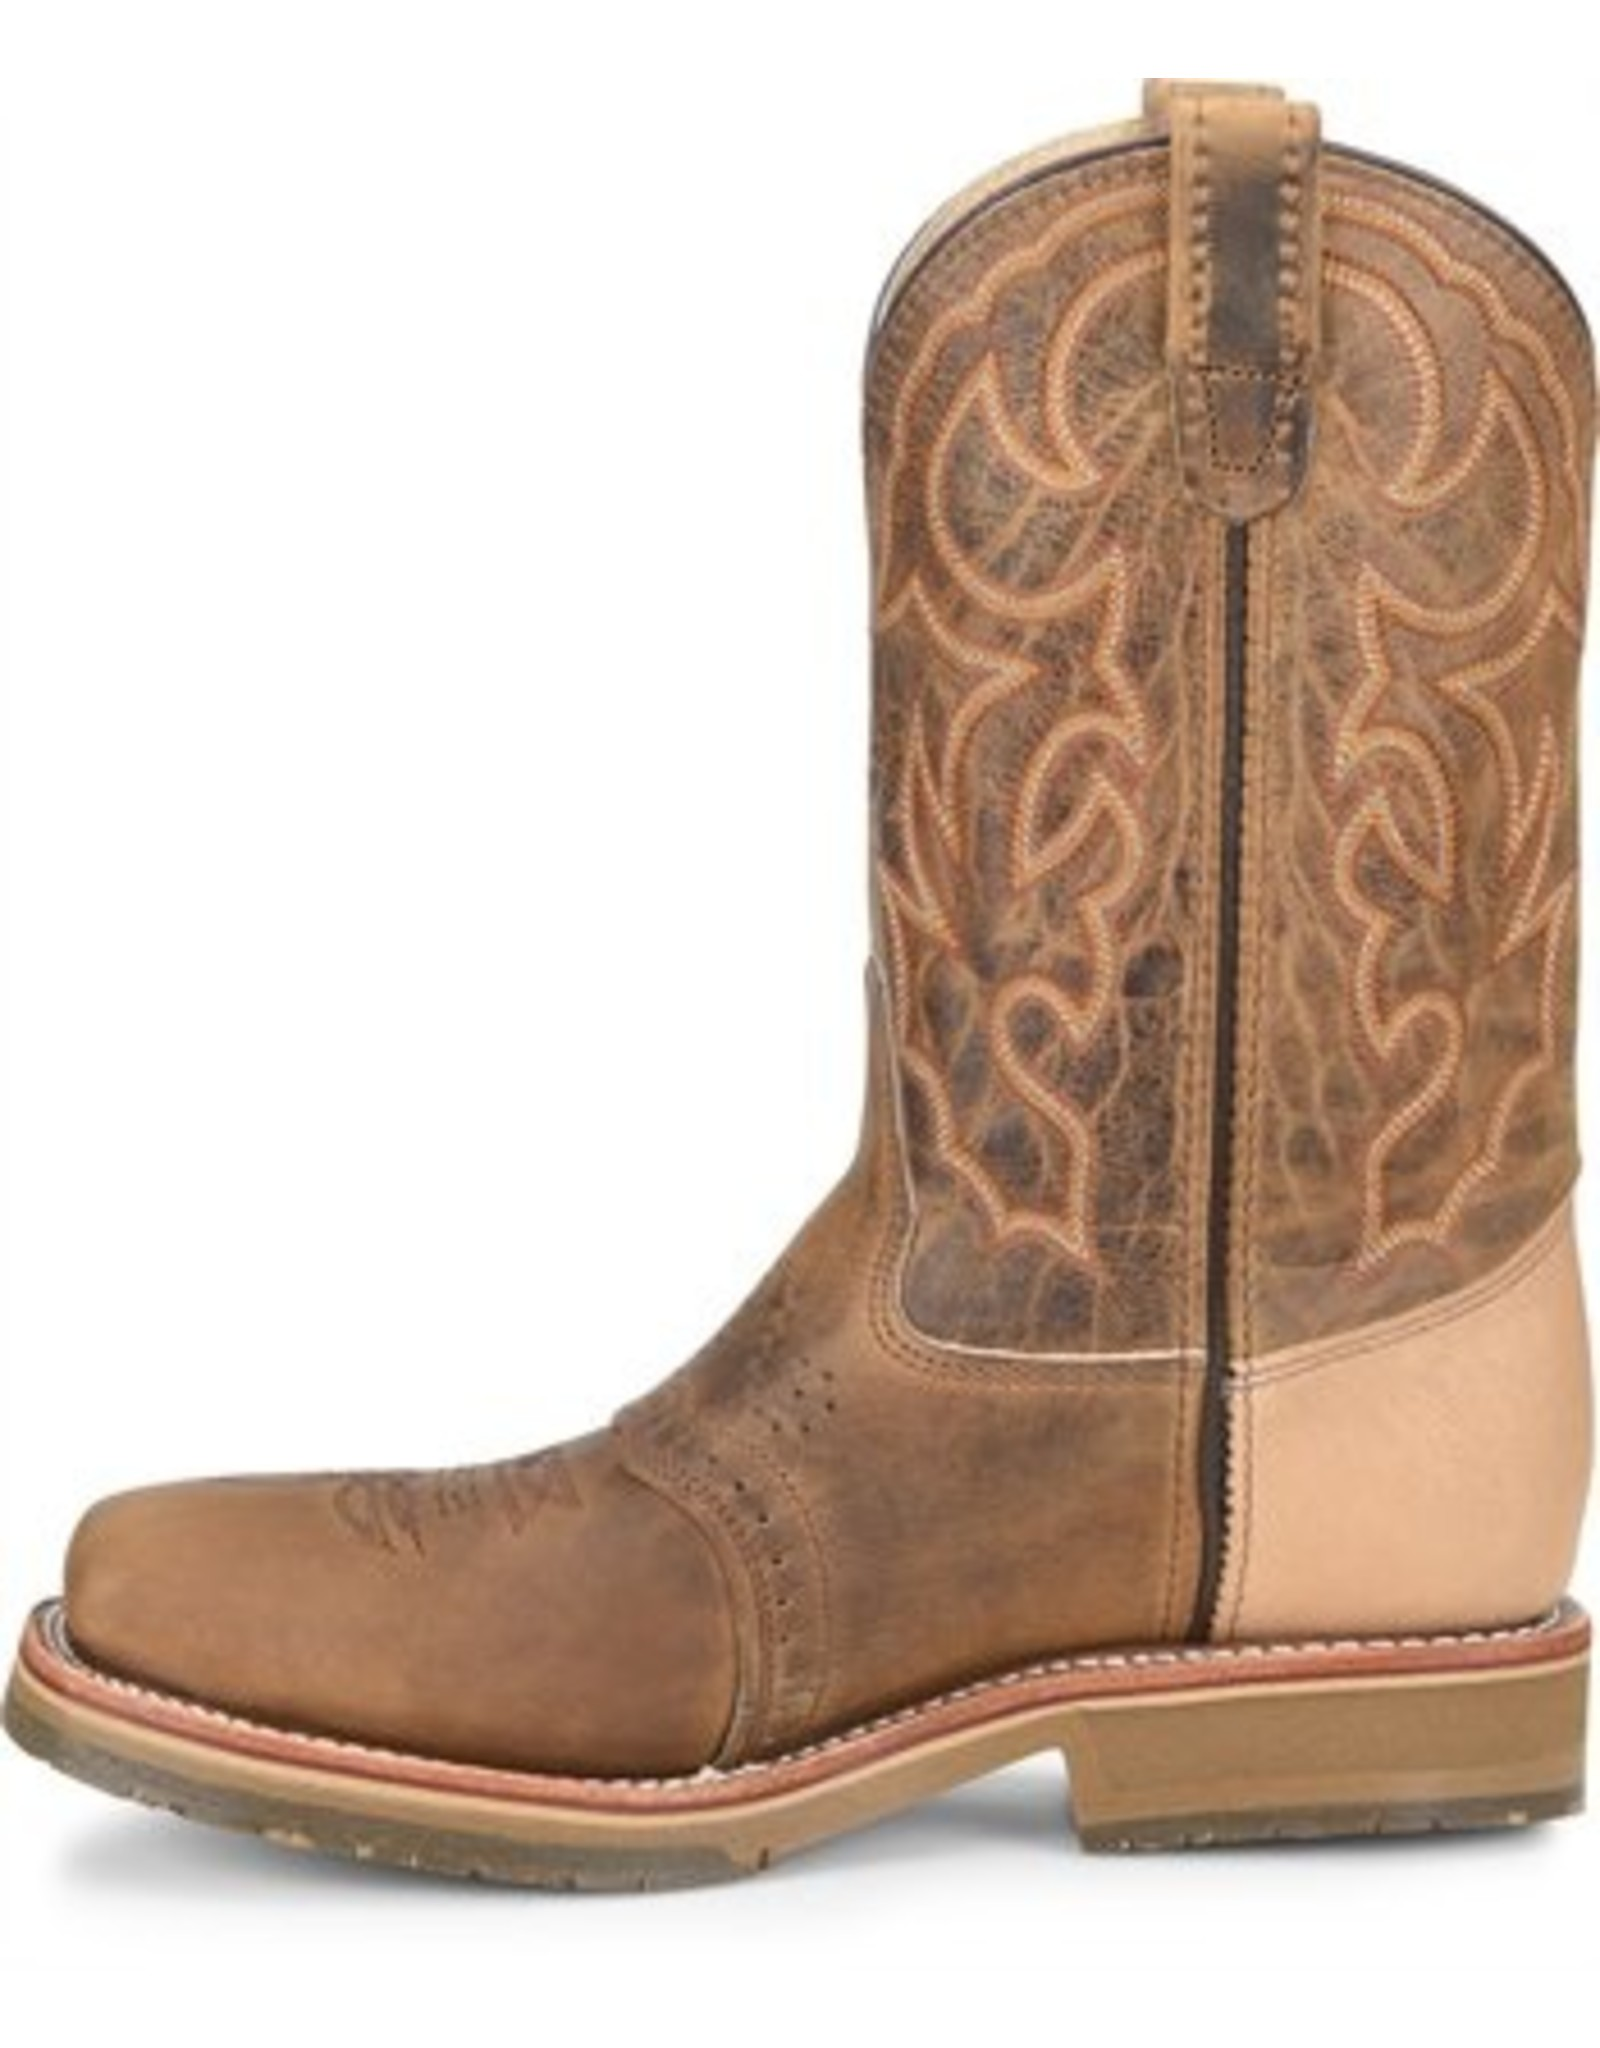 Double H DH3567<br /> Dwight Steel Toe